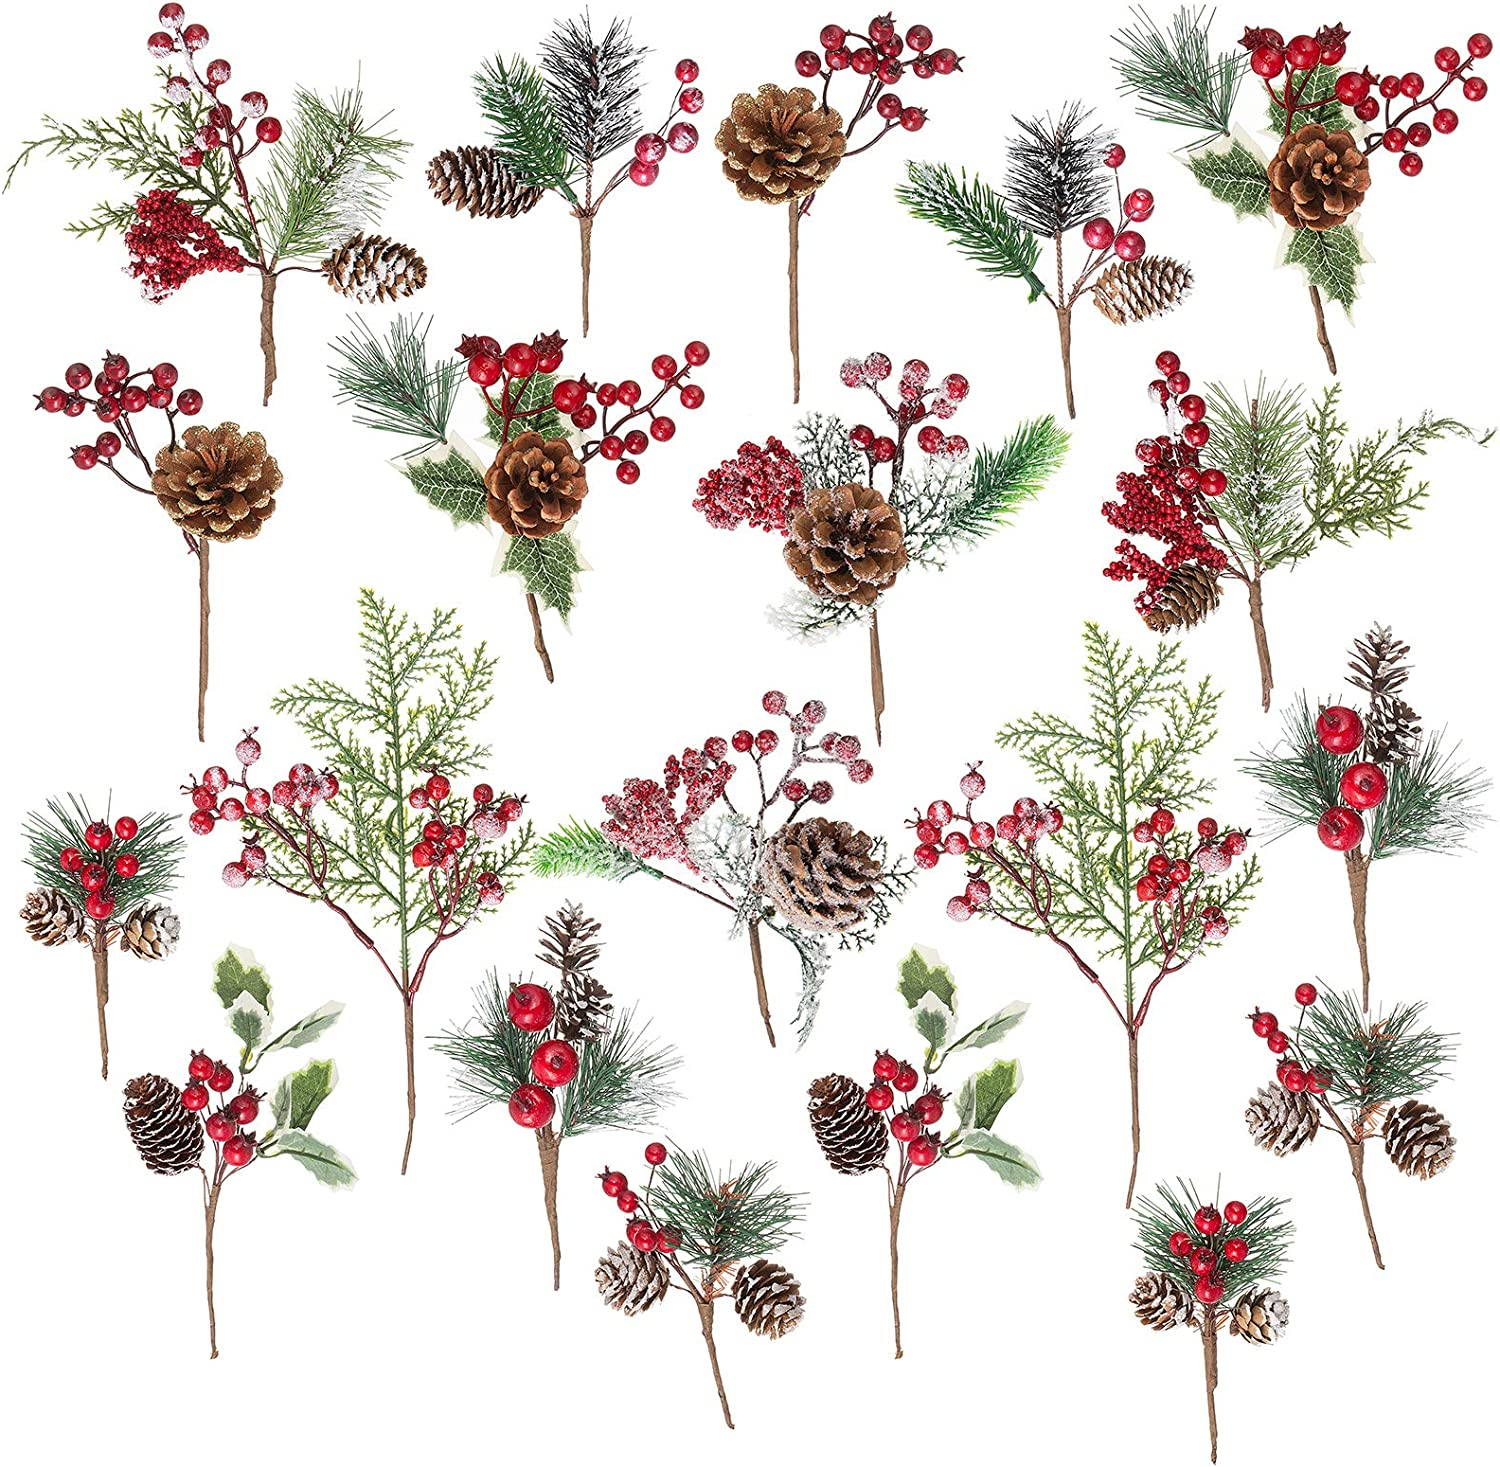 Crafare 20 Pack Artificial Christmas Picks Assorted Red Berry Picks Stems Faux Pine Picks Spray with Pinecones Apples Holly Leaves for Christmas Floral Arrangement Wreath Winter Holiday Season Déco